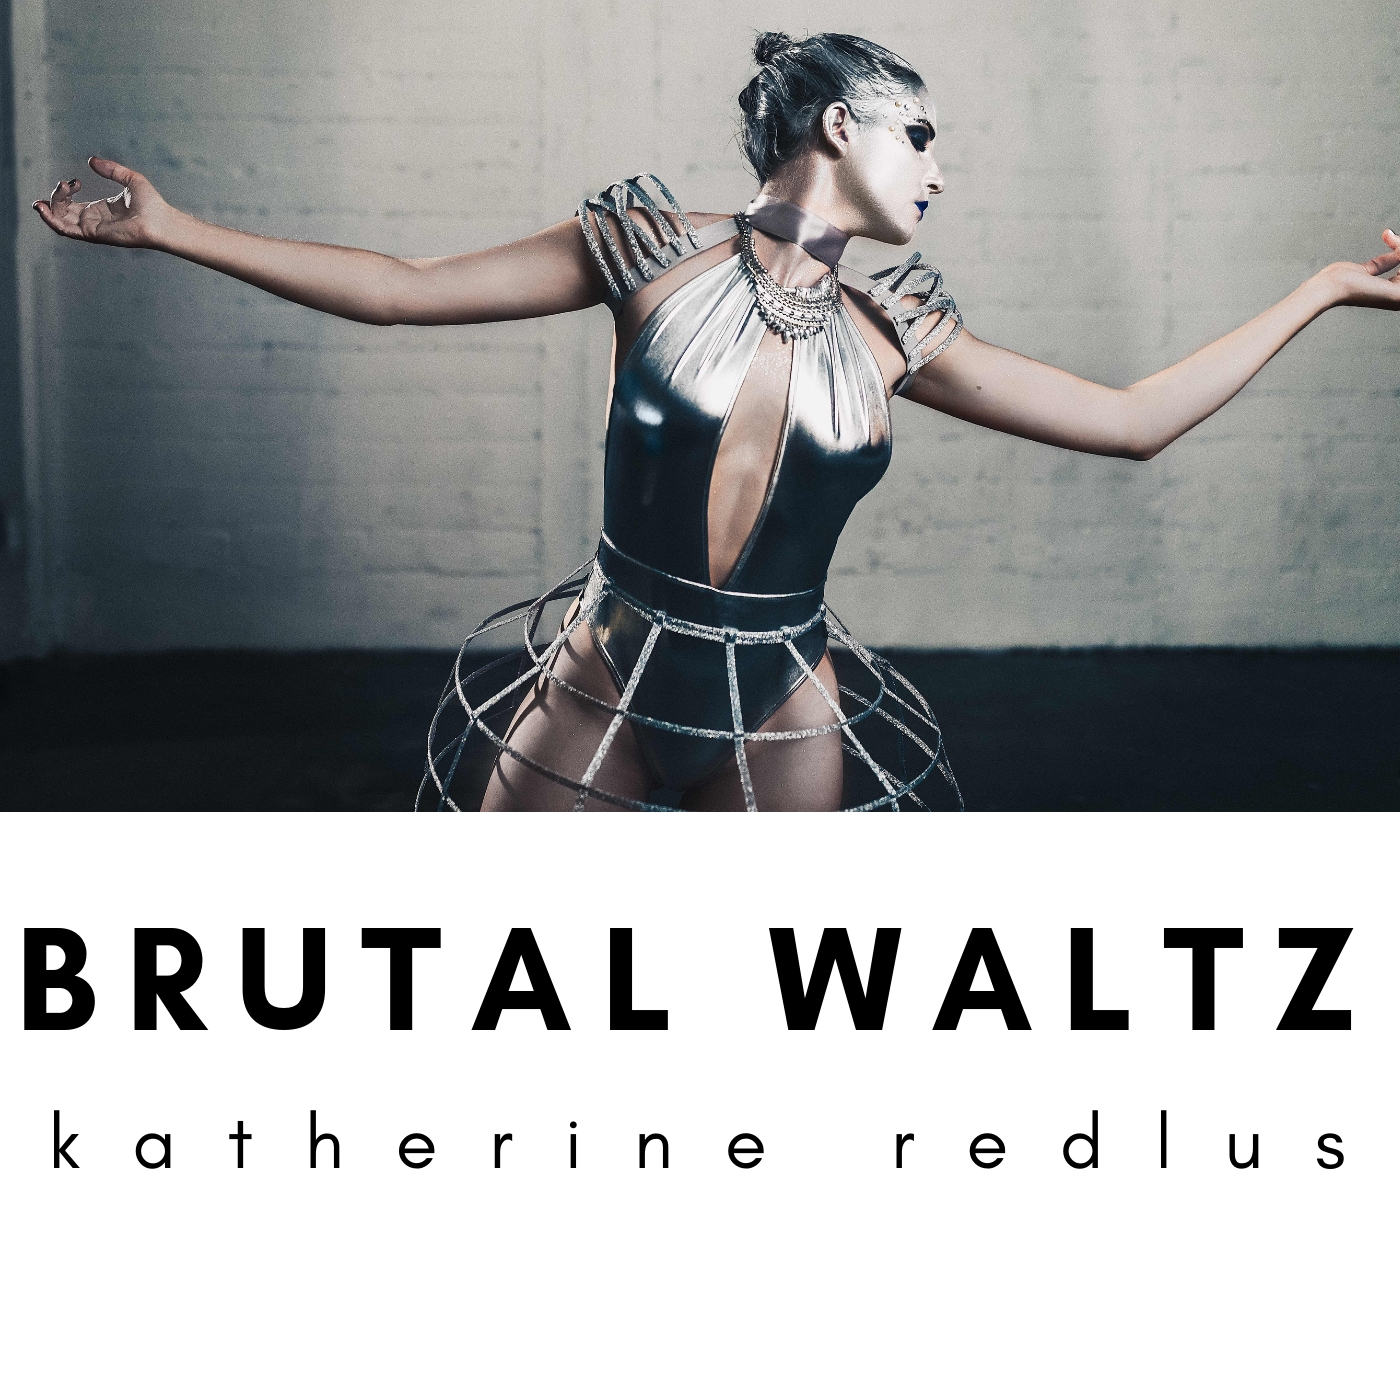 CONNECT - BRUTAL WALTZ (album) link: https://open.spotify.com/album/3hBORHI3hQ9rel372bf6JcBOOKING: katherineredlusmusic@gmail.comINSTAGRAM: @katherineredlusmusicFACEBOOK: https://www.facebook.com/katherineredlusmusic/SOUNDCLOUD: https://soundcloud.com/katherineredlusYOUTUBE: https://www.youtube.com/channel/UCljhUJeqyabSyxIZsG2qzrQ2018 (funded) Kickstarter Page:https://www.kickstarter.com/projects/1802839936/electroacoustic-harp-and-vocal-debut-album-by-kath?ref=nav_search&result=project&term=katherine%20redlus